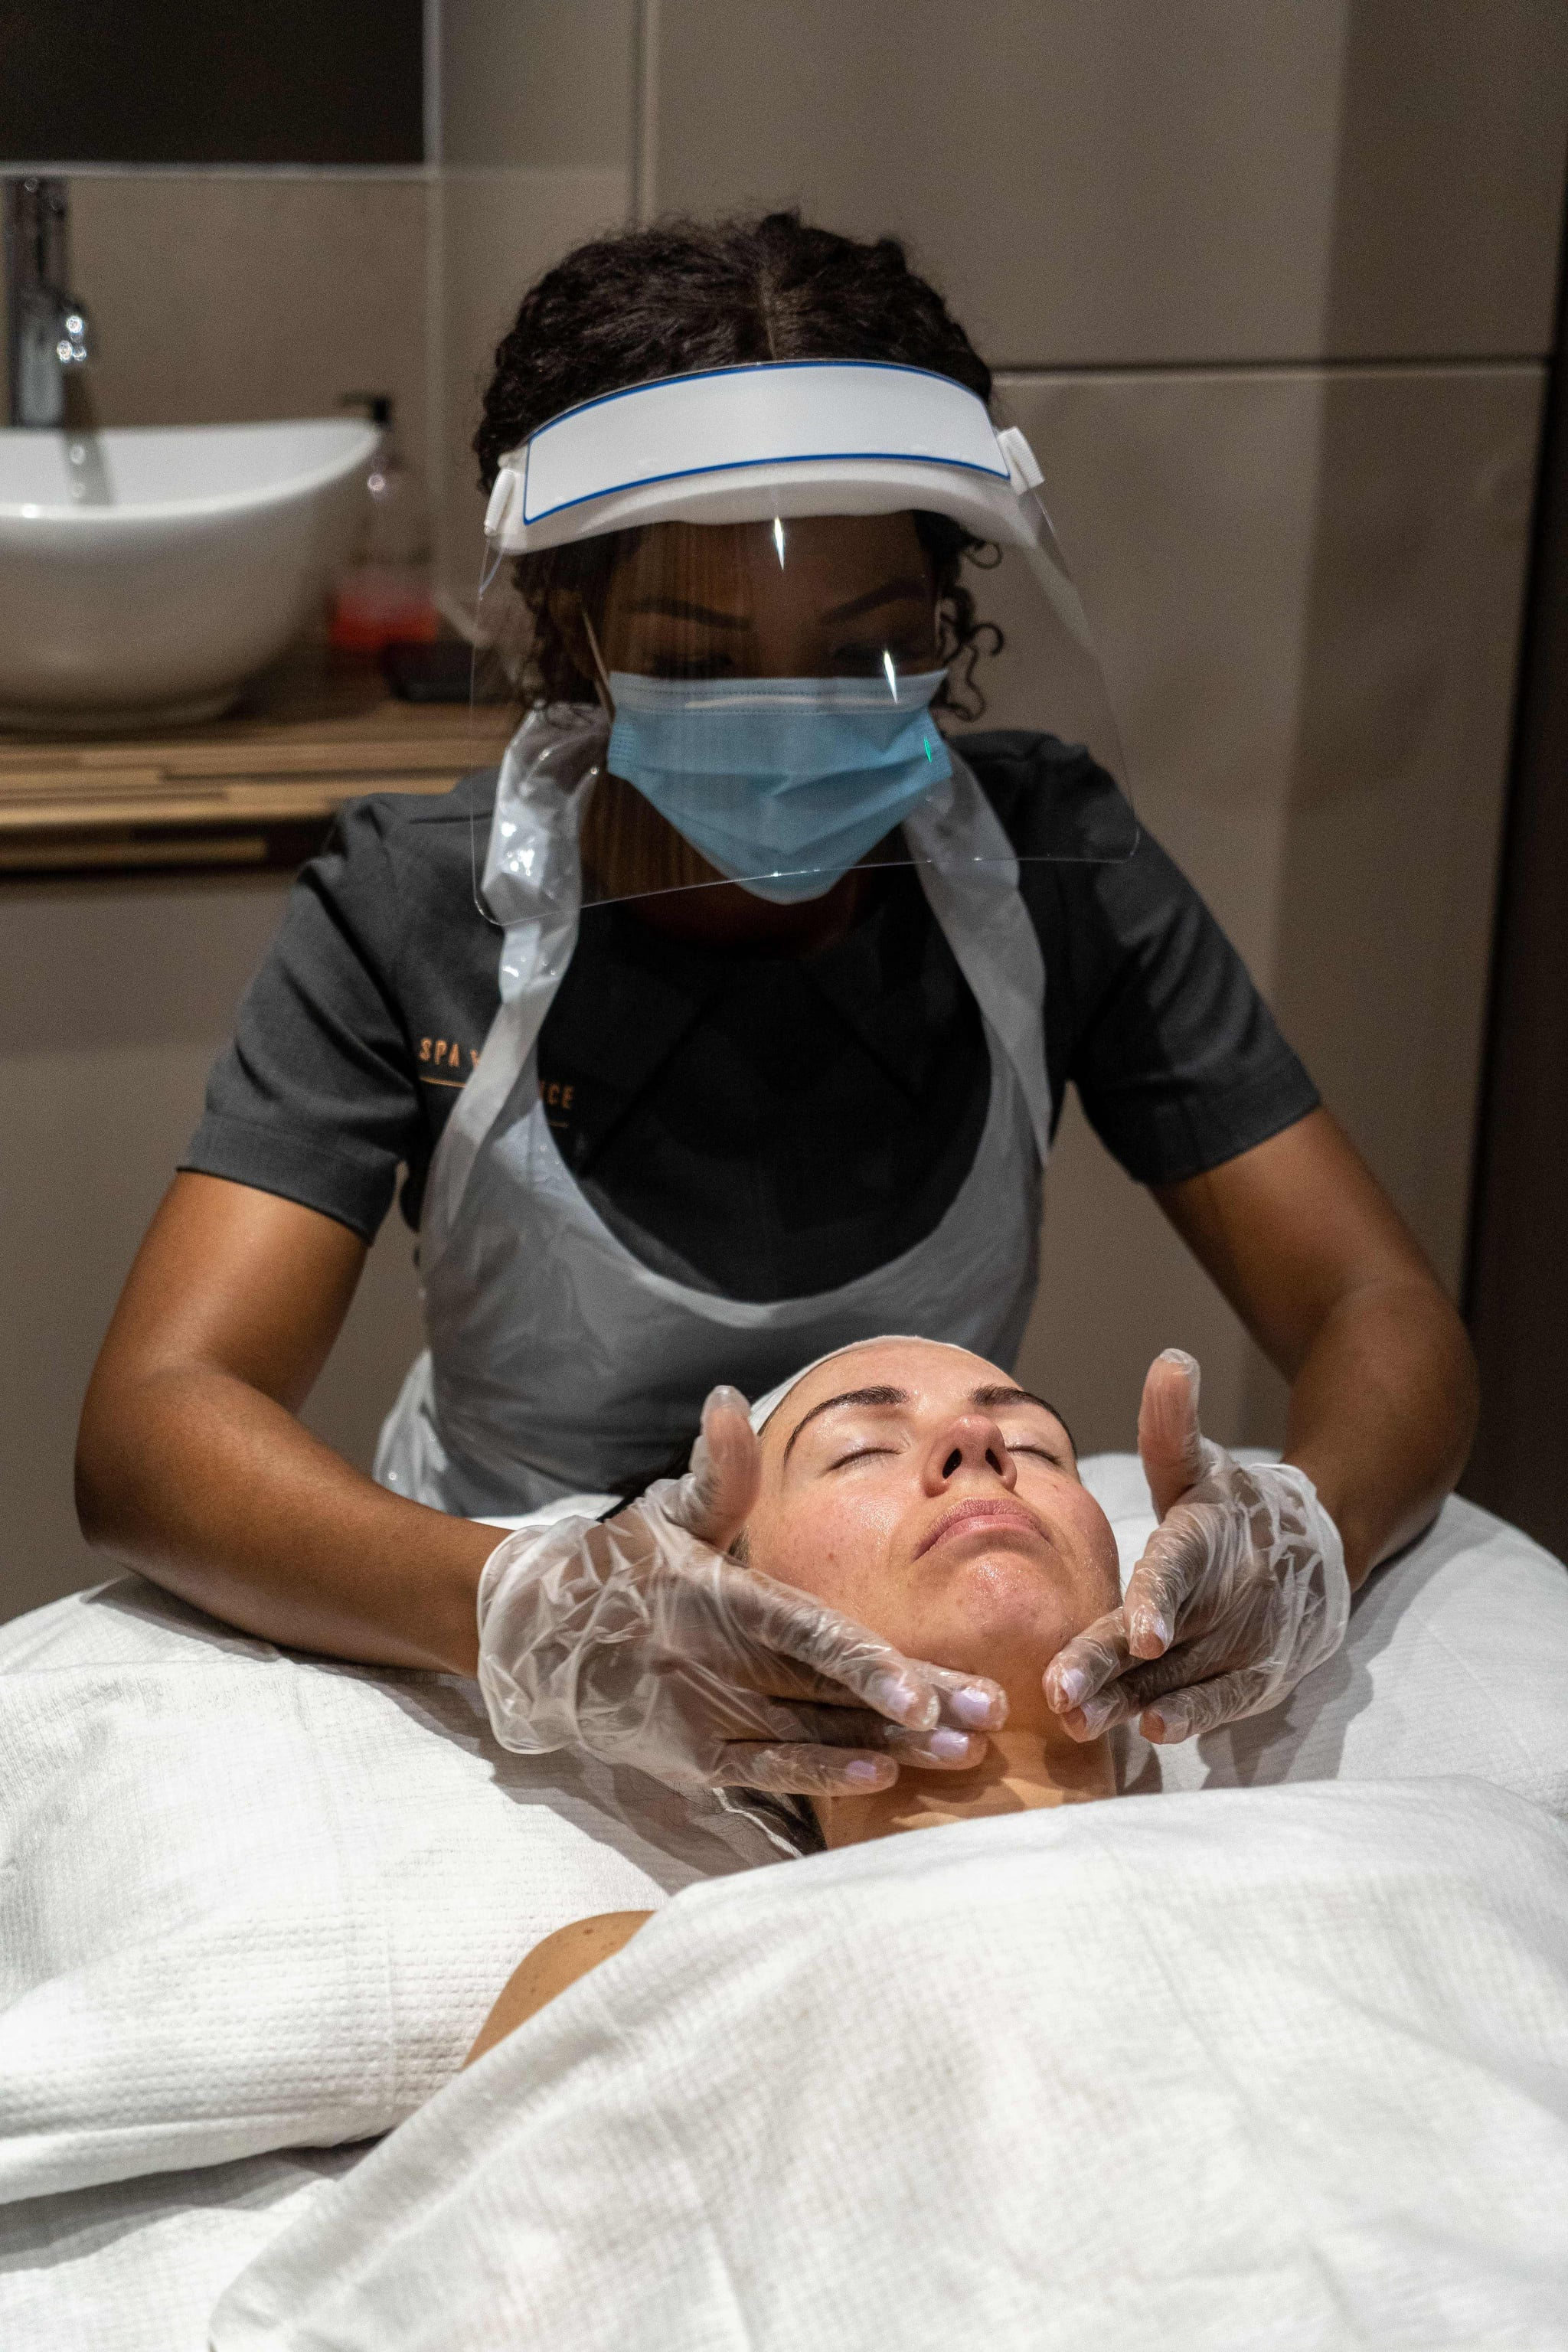 Wearing full PPE (personal protective equipment), Theresa Shangazhike, manager of the Spa Experience Wimbledon, gives her client, Lauren Shine a facial treatment in Wimbledon, south London on August 15, 2020, as beauty salons, spas and hairdressers relax the regulations to combat the coronavirus, now offering additional services, including front-of-face treatments. (Photo by Niklas HALLE'N / AFP) (Photo by NIKLAS HALLE'N/AFP via Getty Images)